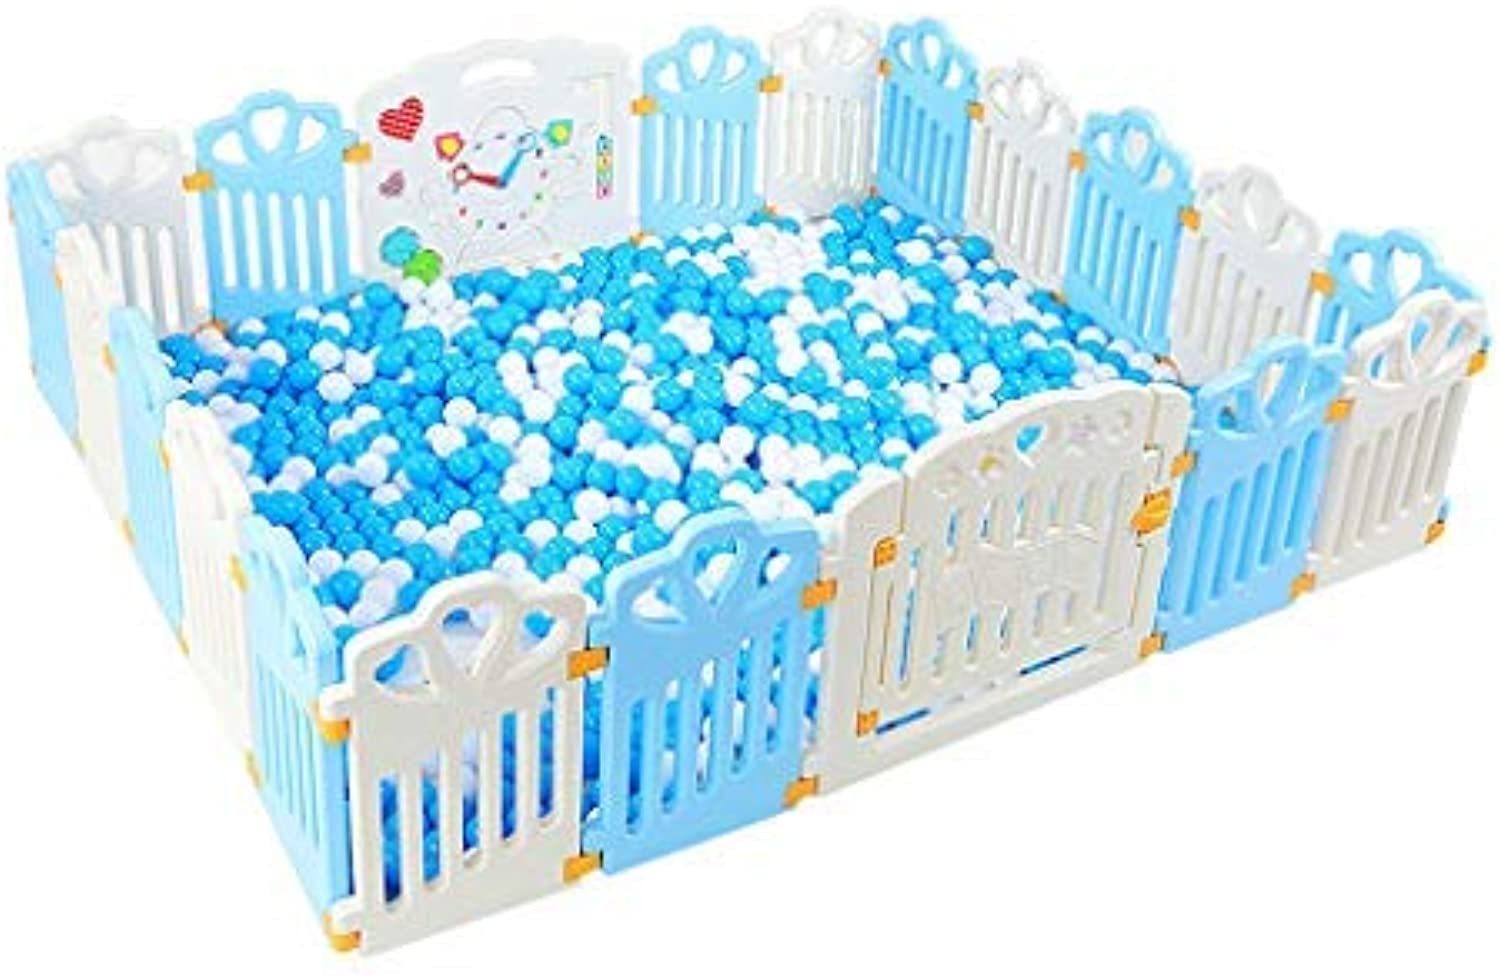 Playground Playground Playground Everywhere Plastic Plastic Plastic Plate bluee White Outdoor Inner Wall, 4 Sizes (color  D) 039e50